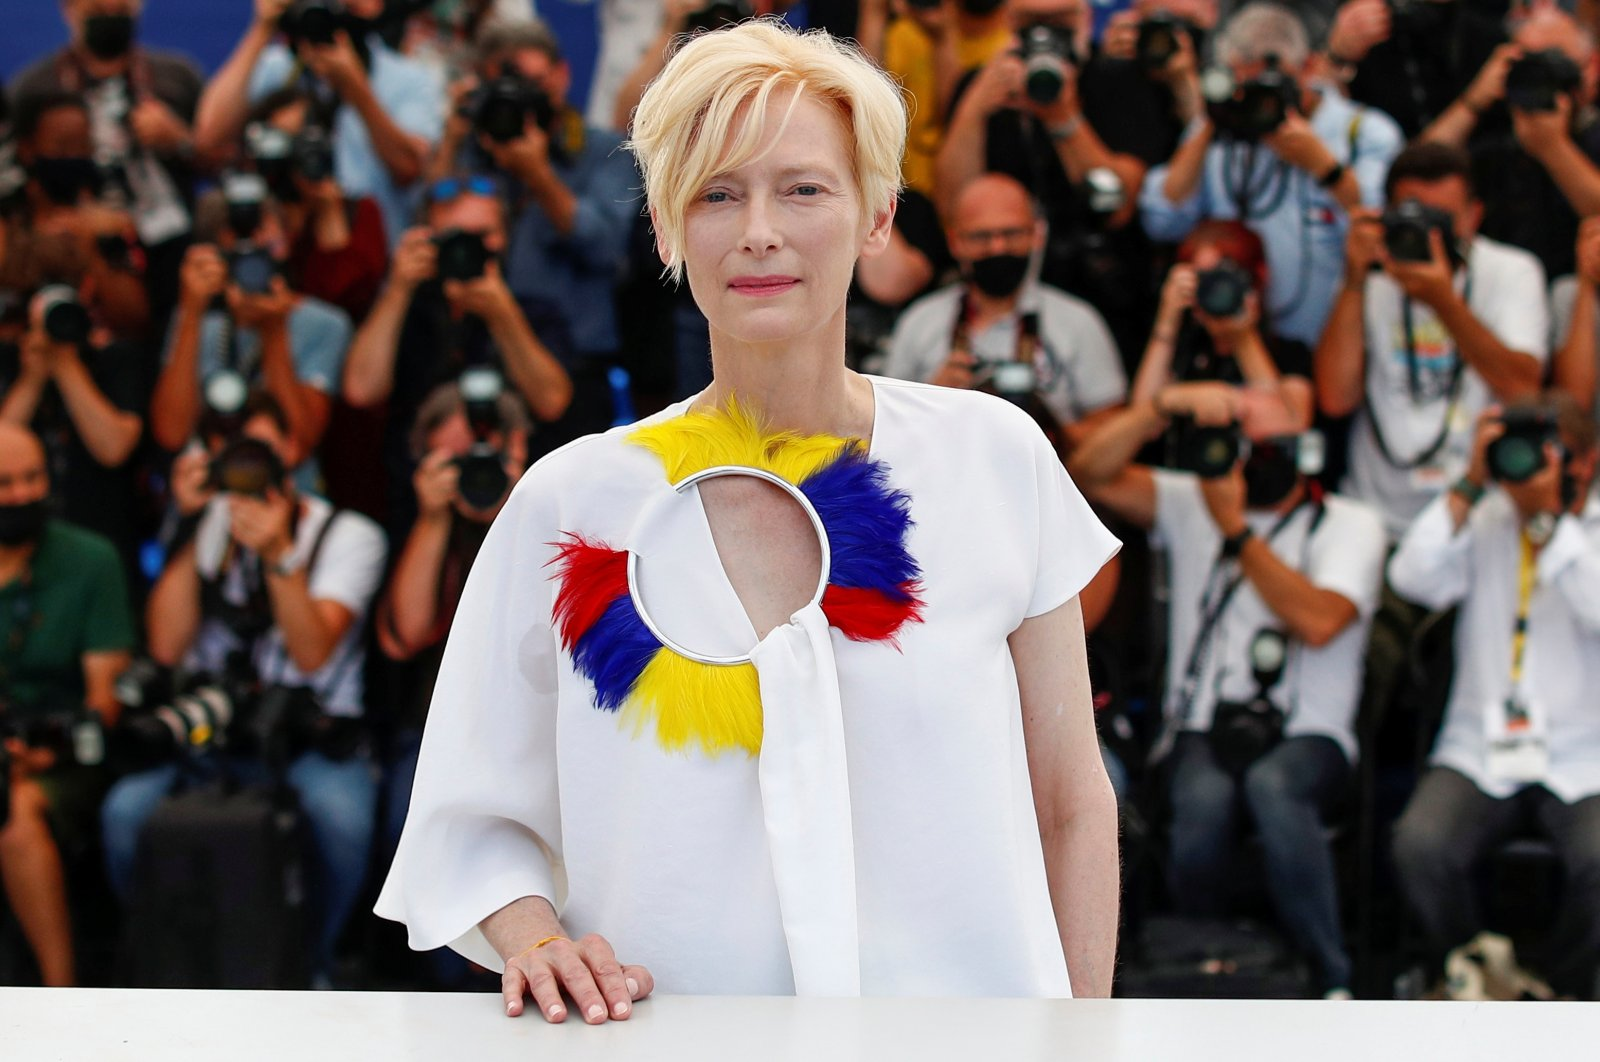 """British actress Tilda Swinton poses during a photocall for the film """"Memoria,"""" at the 74th Cannes Film Festival in Cannes, France, July 16, 2021. (Reuters Photo)"""